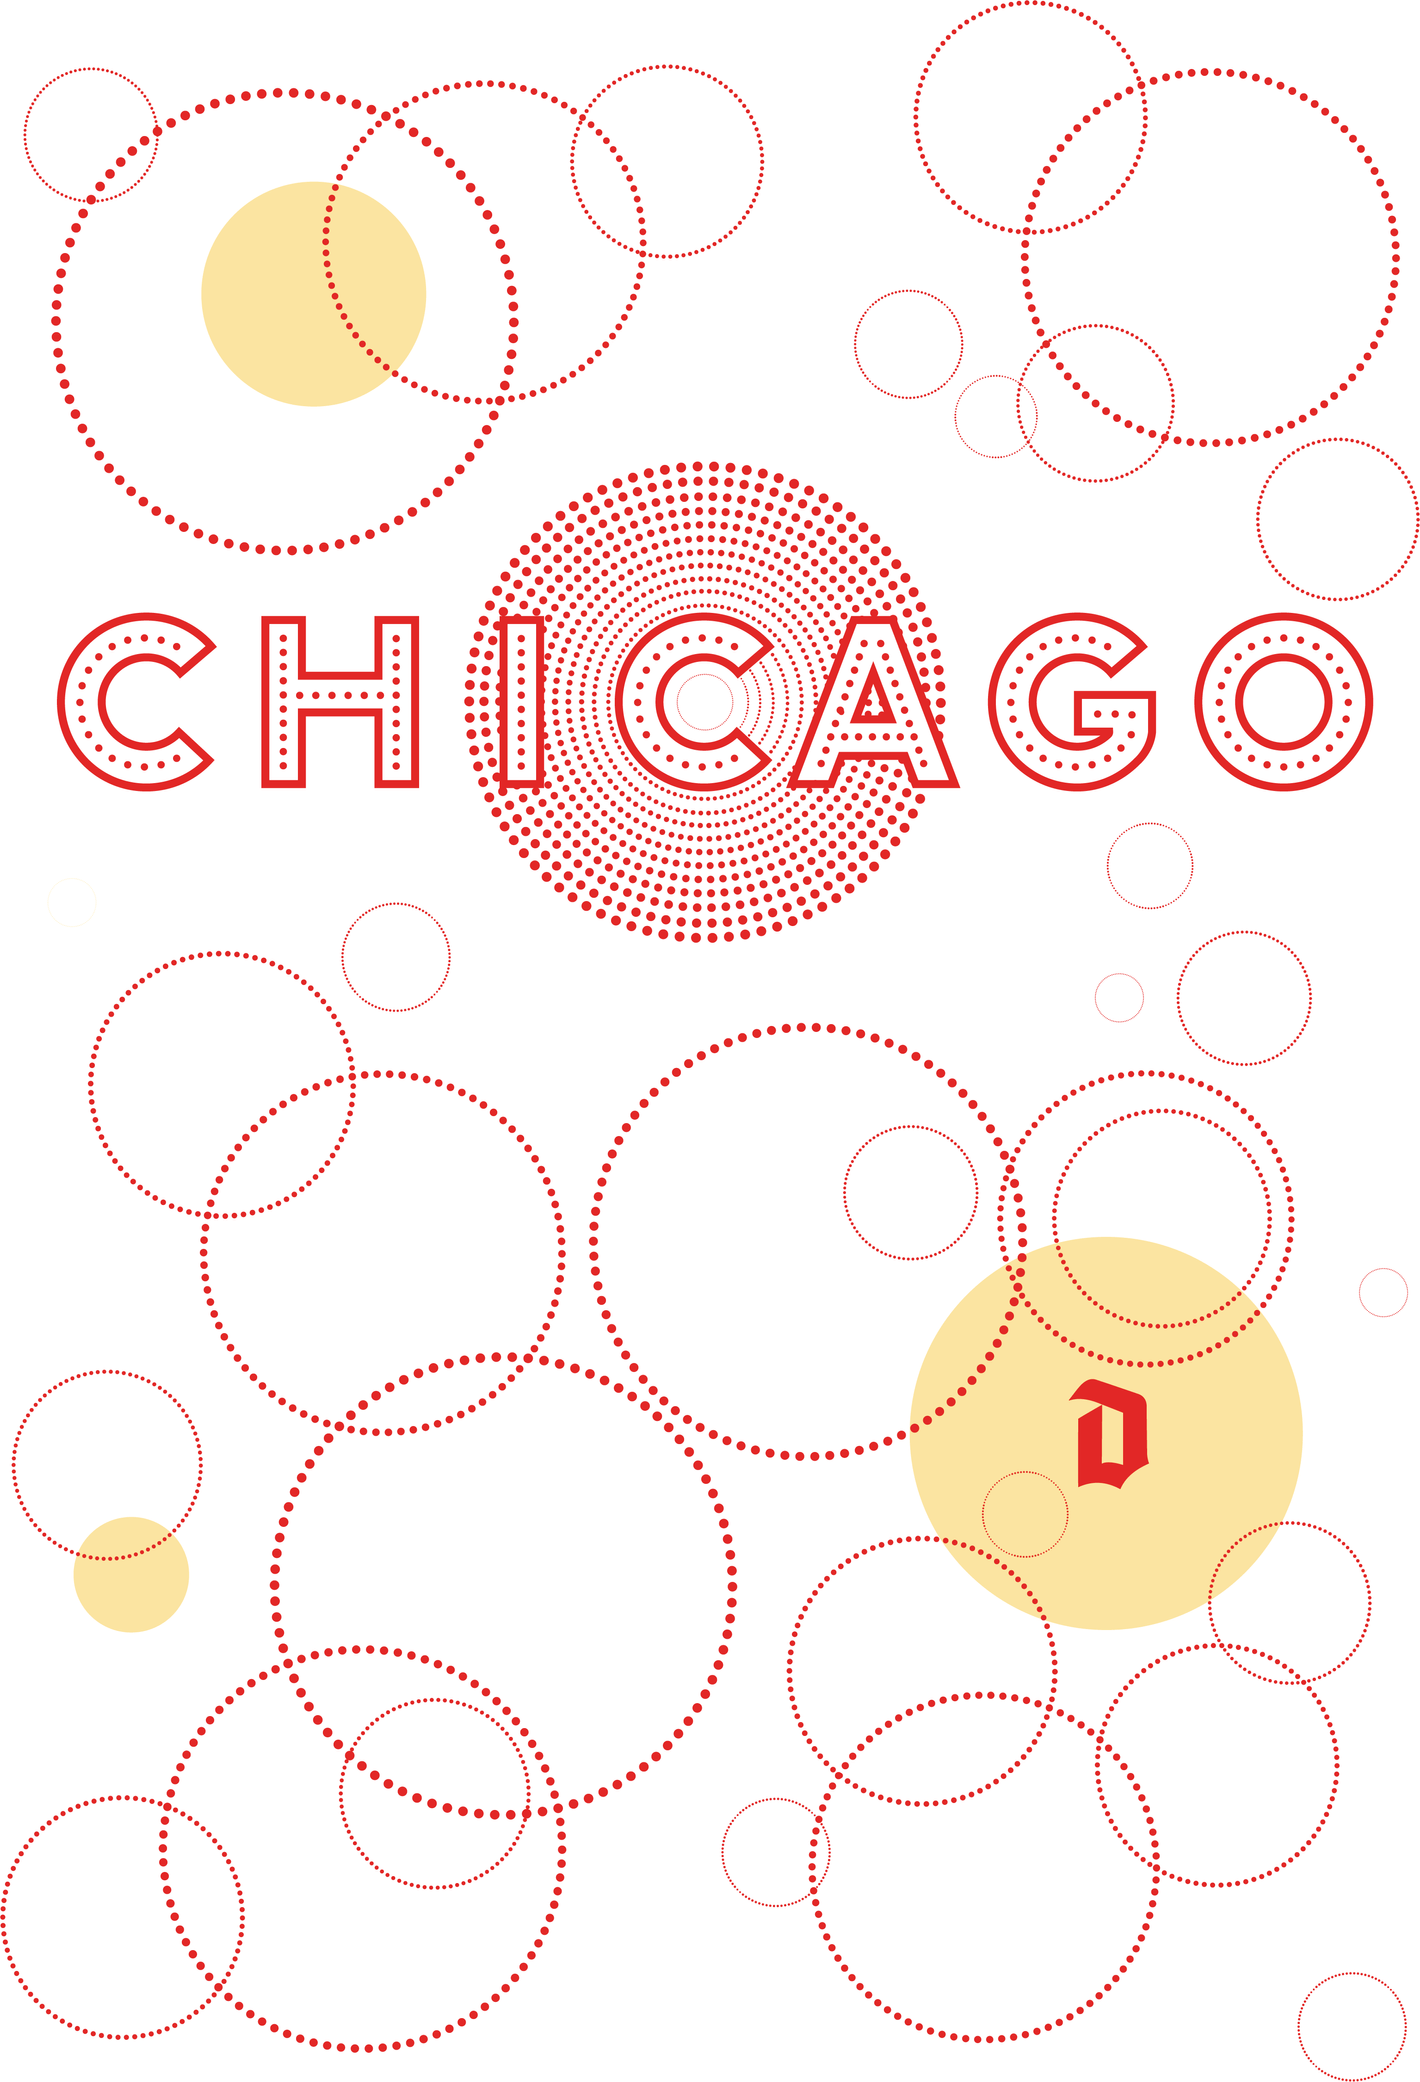 The city name Chicago surrounded by highly geometrical bubbles that reminds you to the bubbles in the Duvel tulip glass